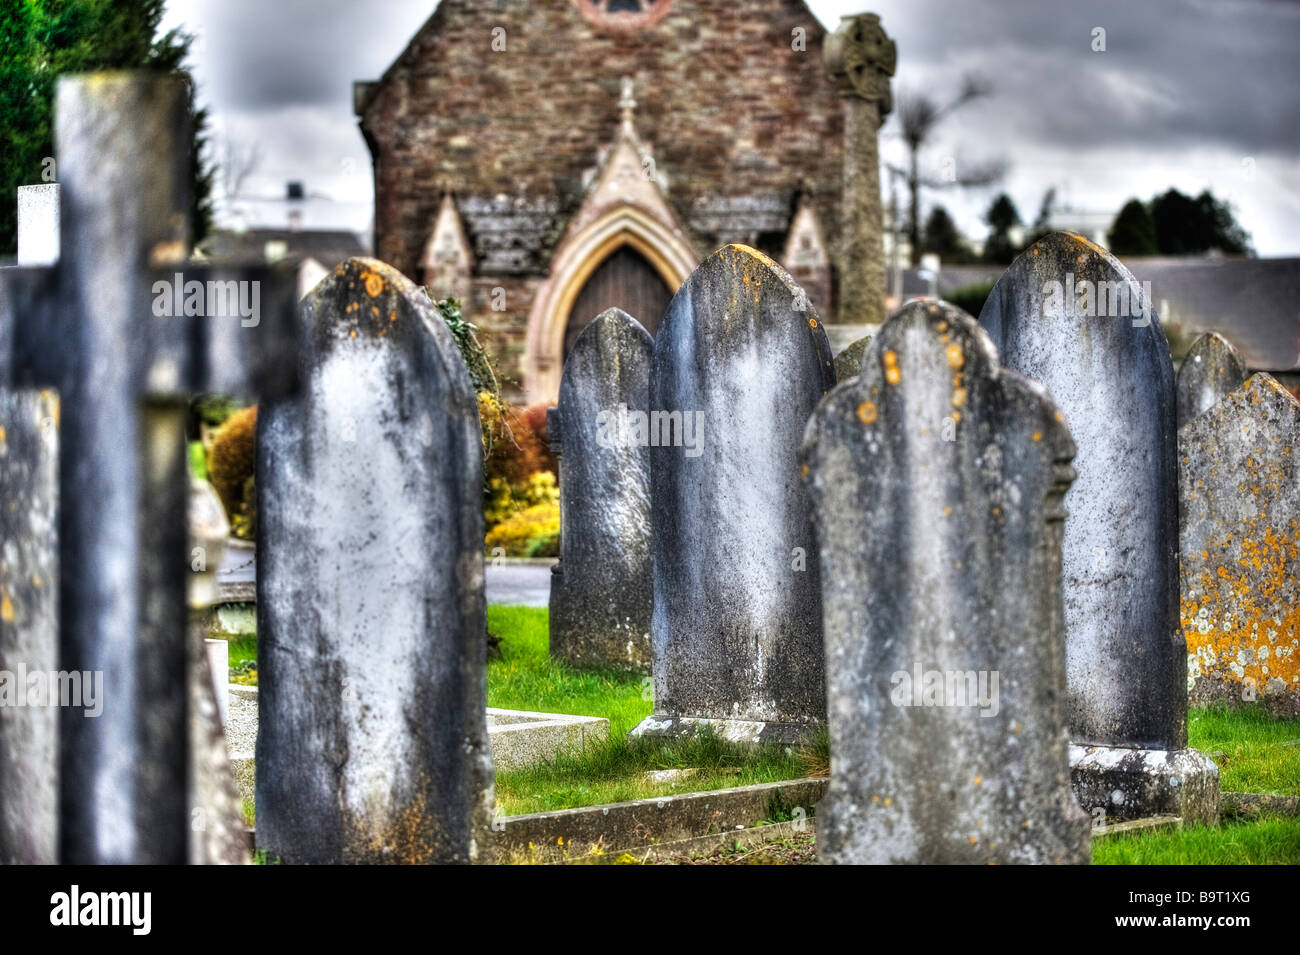 An old church yard in South Molton, Devon in the Untied Kingdom, spring 2009 with a storm rolling in off the sea. - Stock Image